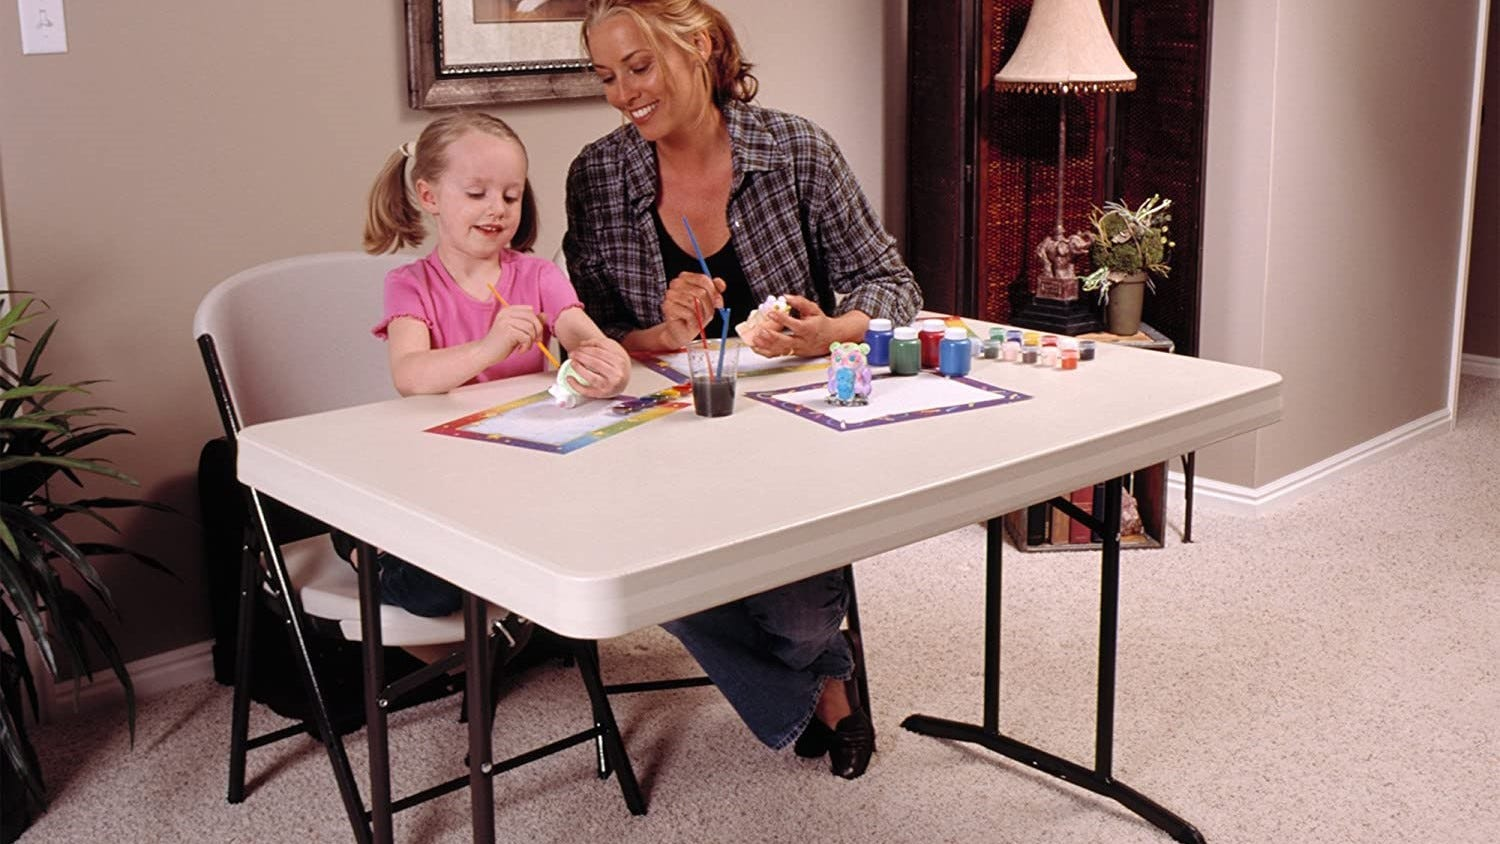 A woman and little girl sitting at a folding table working on crafts.